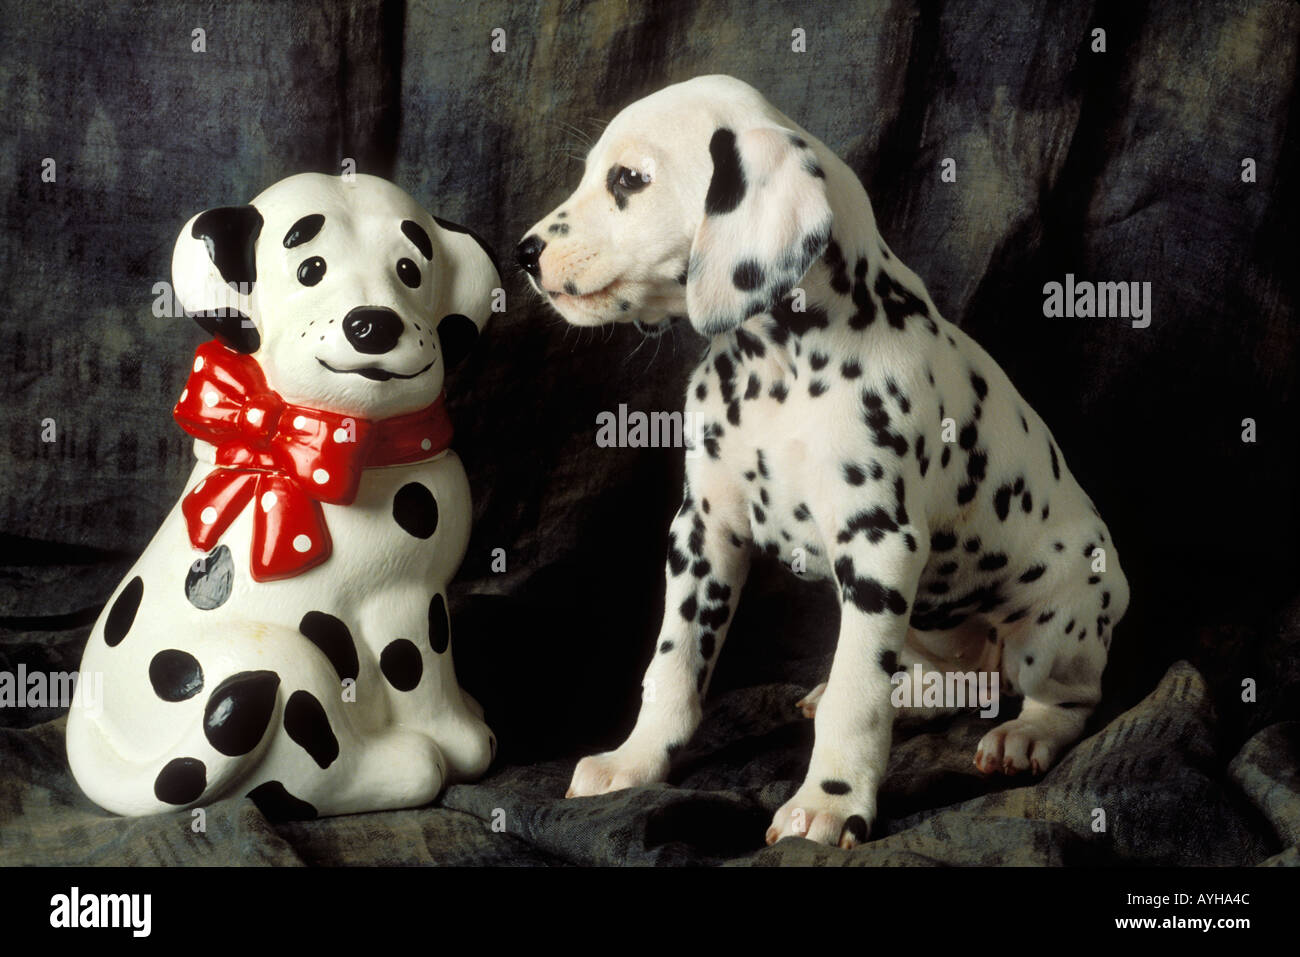 Dalmatian puppy with cookie jar - Stock Image